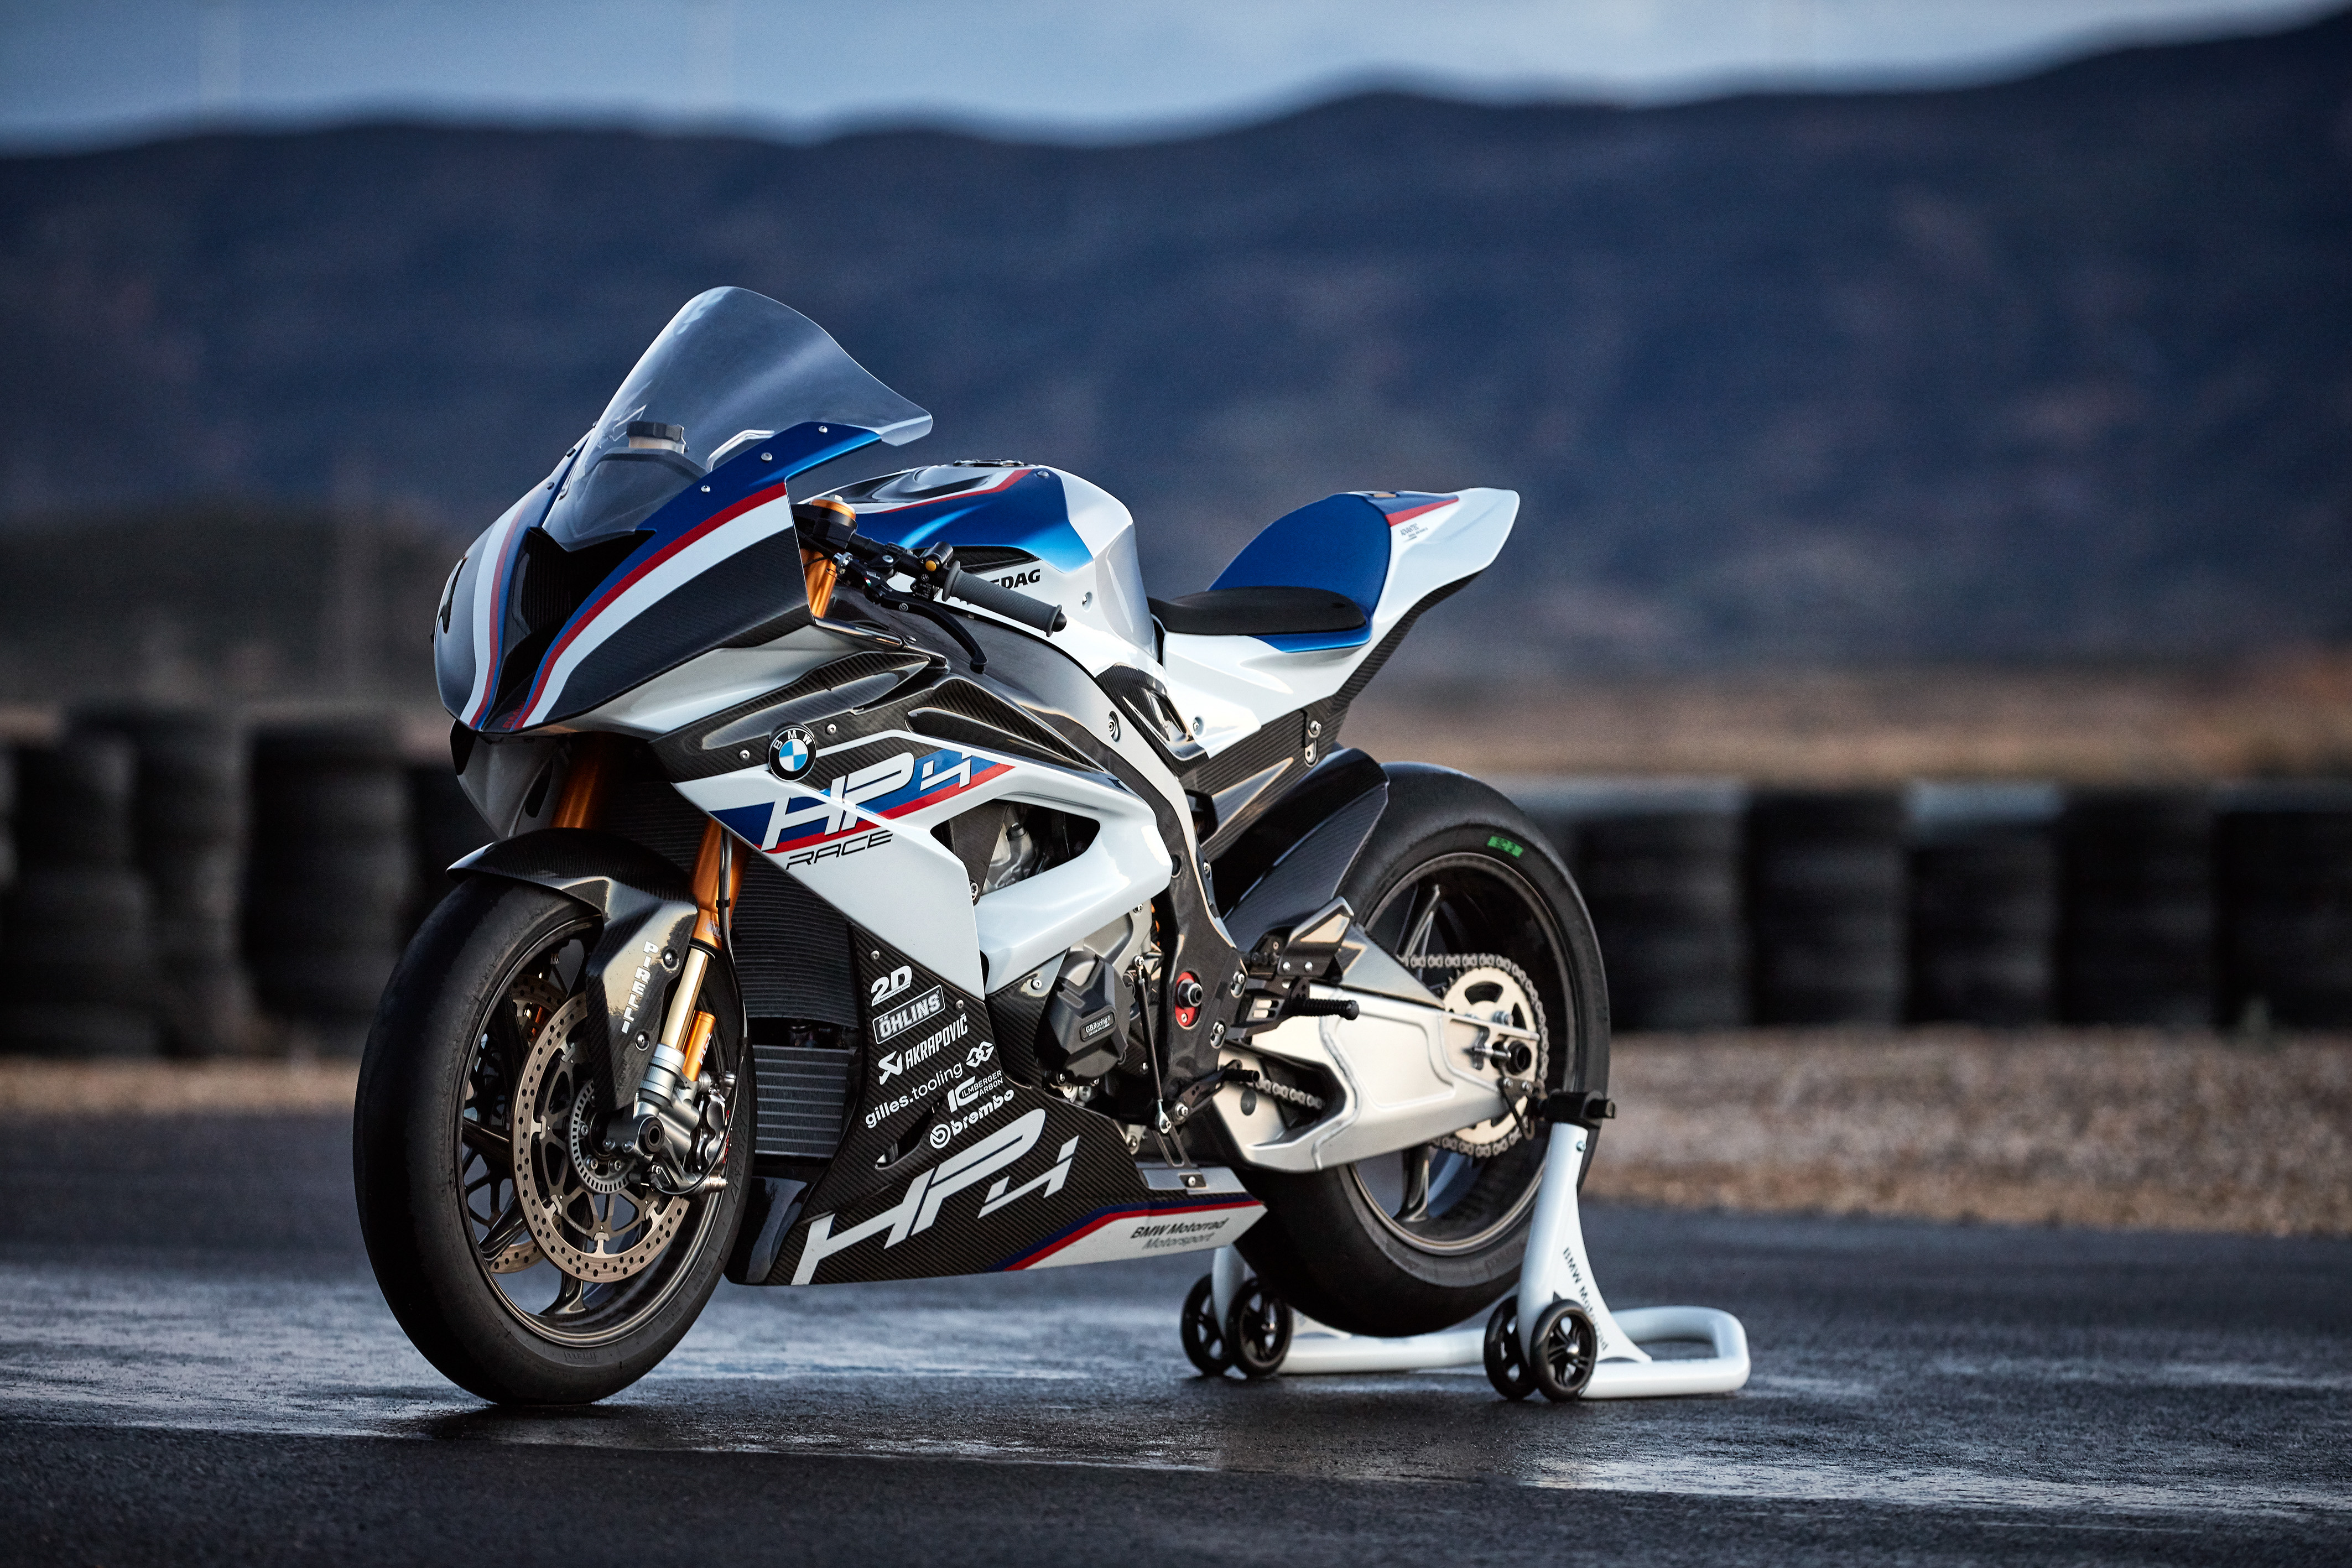 Kawasaki H2r Vs Bmw Hp4race Let The High Speed Hostilities Resume The Bike Shed Times